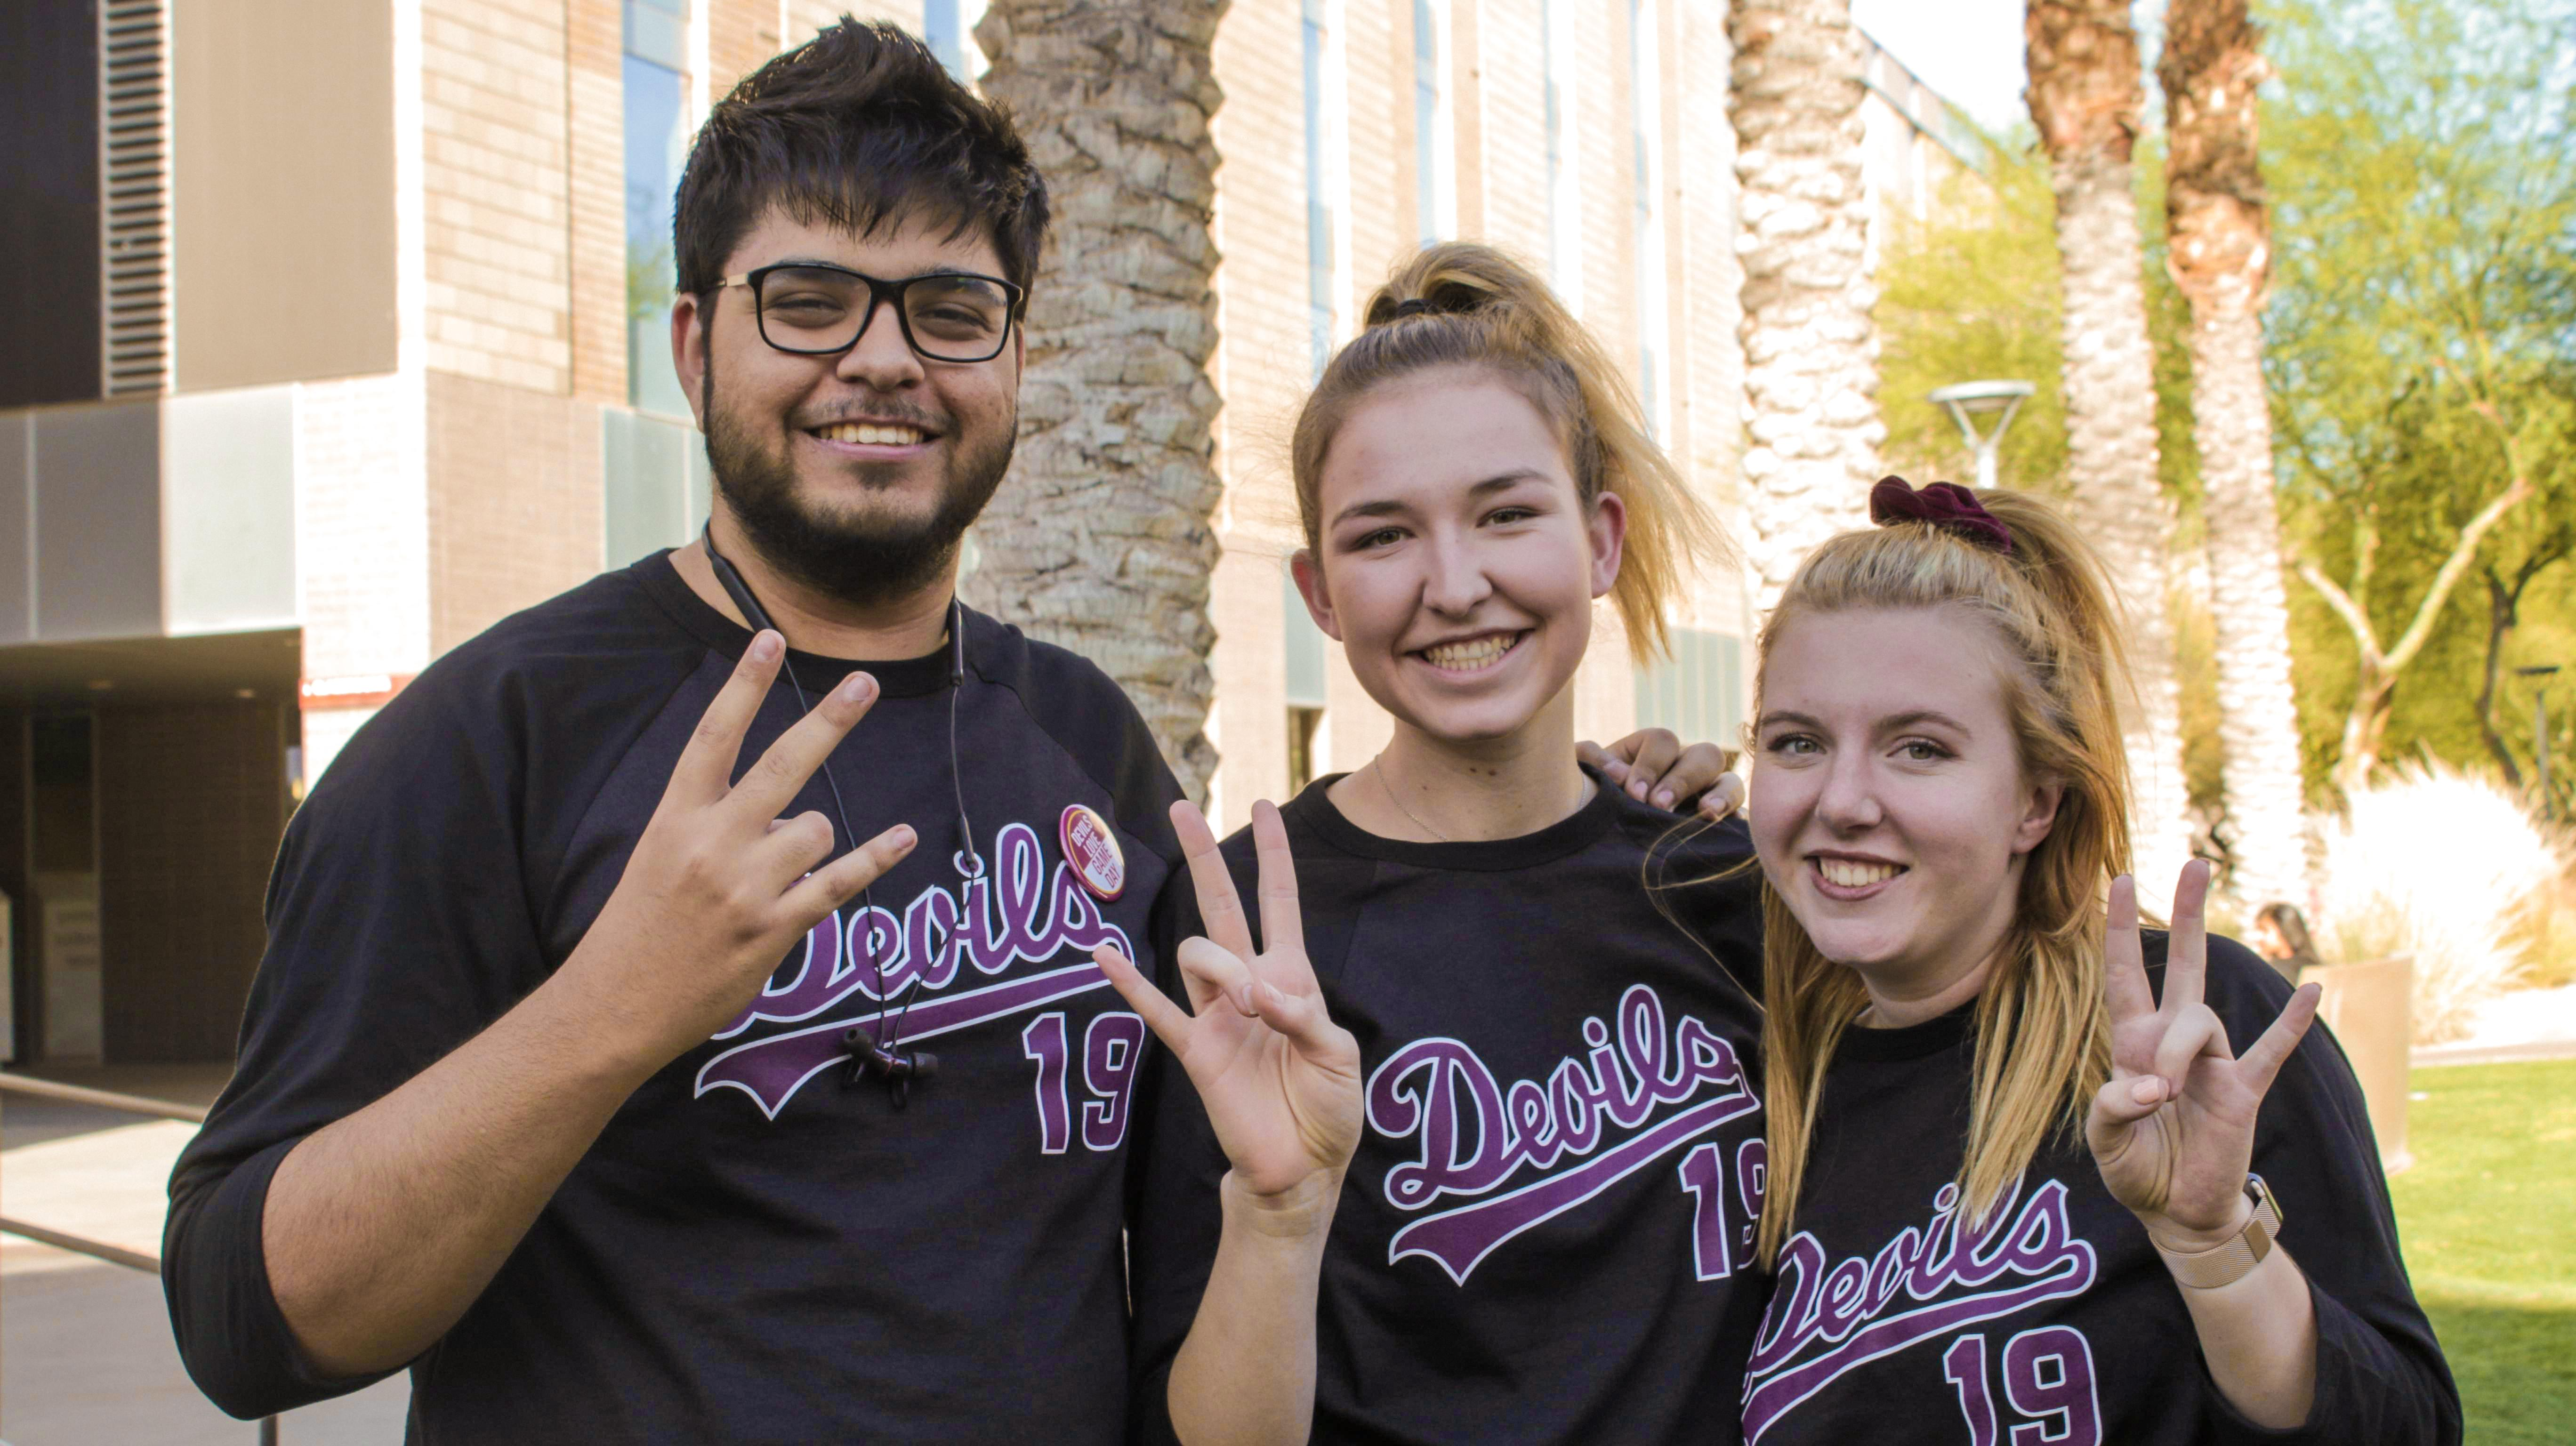 ASU students in baseball jerseys giving a forks up sign before the U of A games